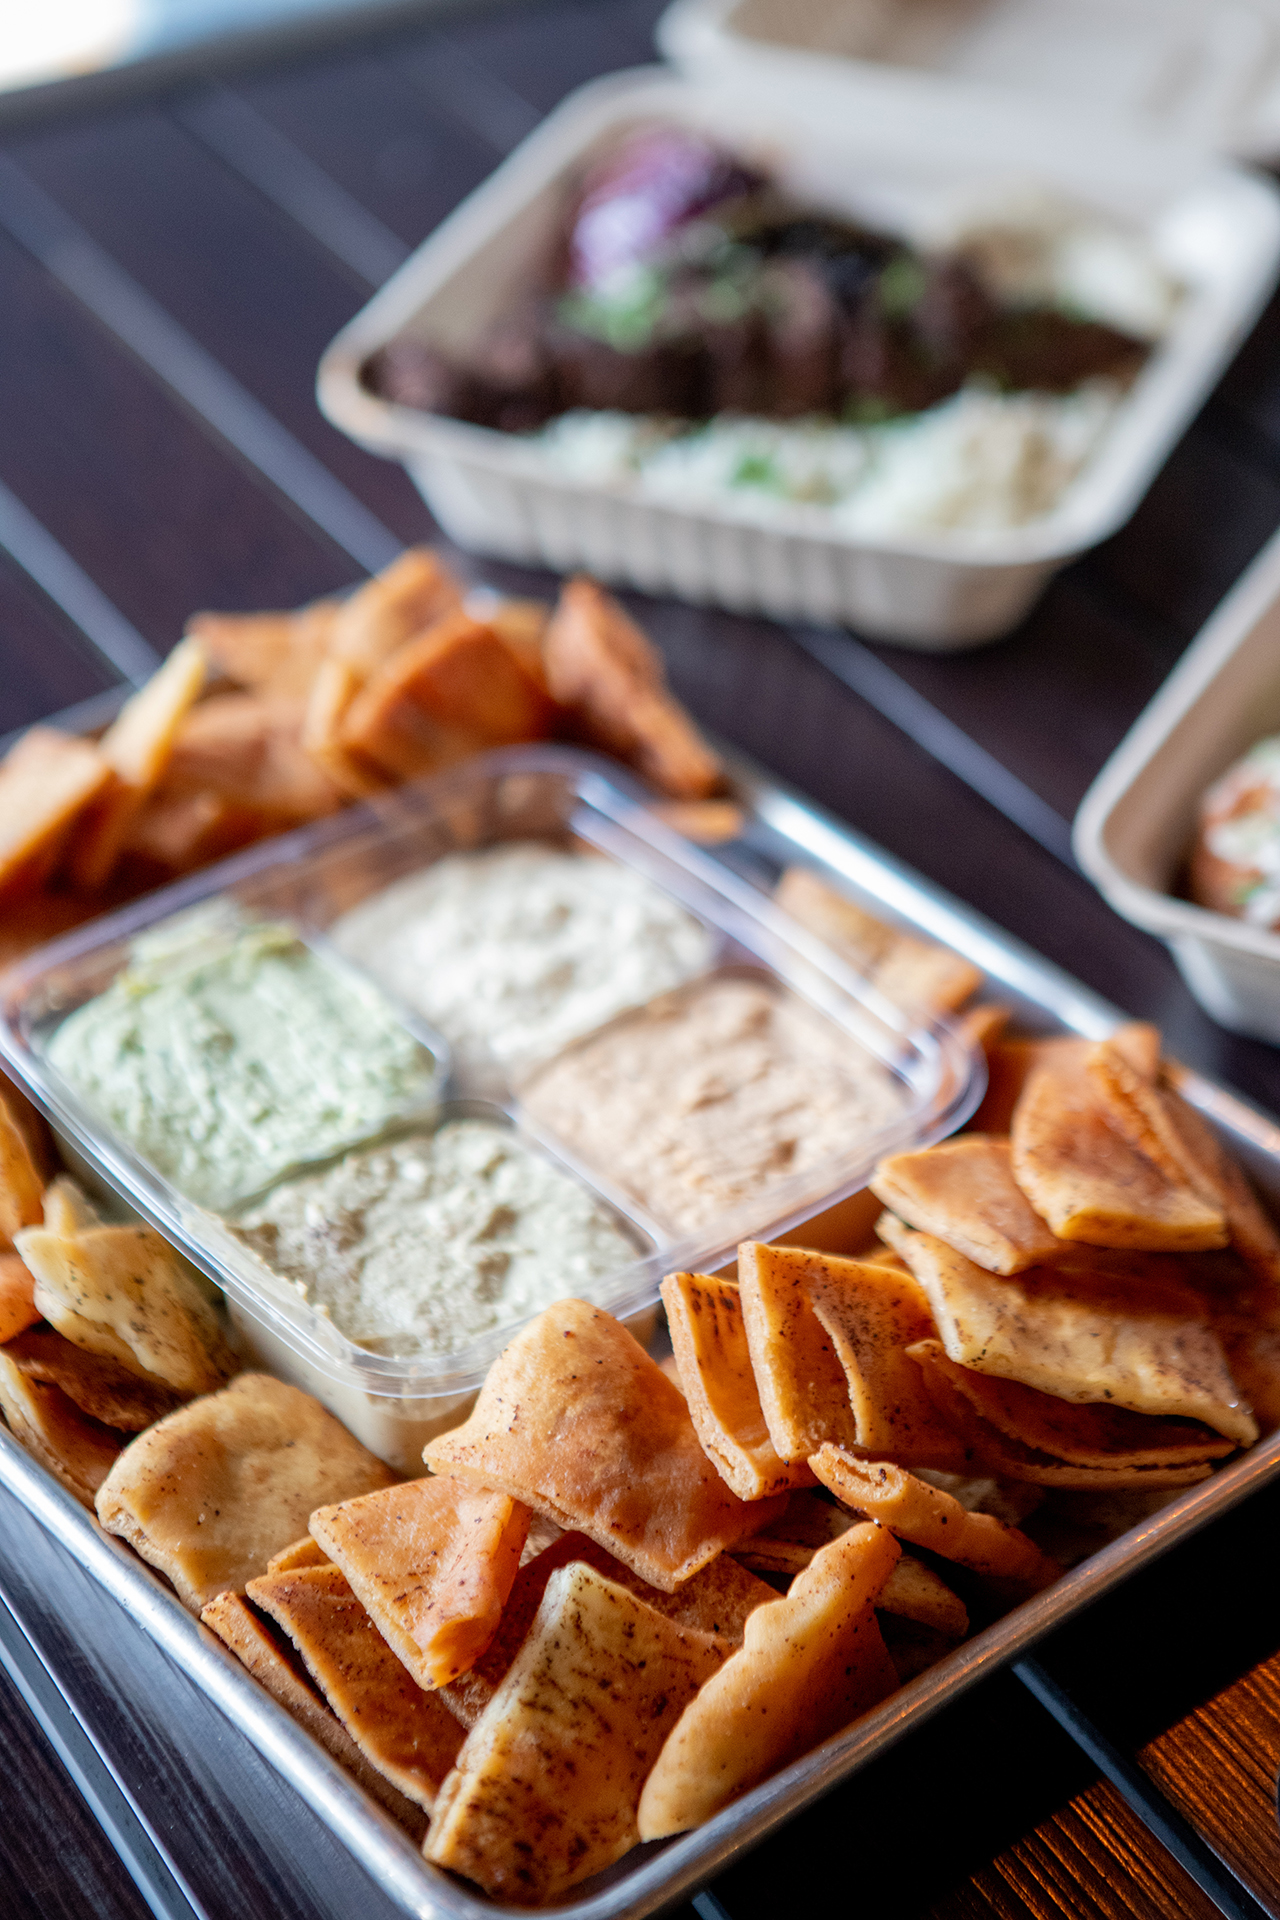 The Party Pack is pictured in a square container with four side orders of our signature Hummus flavors, Classic Hummus, Cilantro Jalapeño Hummus, Roasted Tomato Habanero Hummus, and Cumin Lime Hummus. The Party Pack container is centered on a large rectangular metallic tray and is surrounded by fresh fried pita chips. The tray is placed on a black metallic table and accompanied by a Chicken Kebab platter and a Beef Kafta Kabab platter that are blurred in the background.